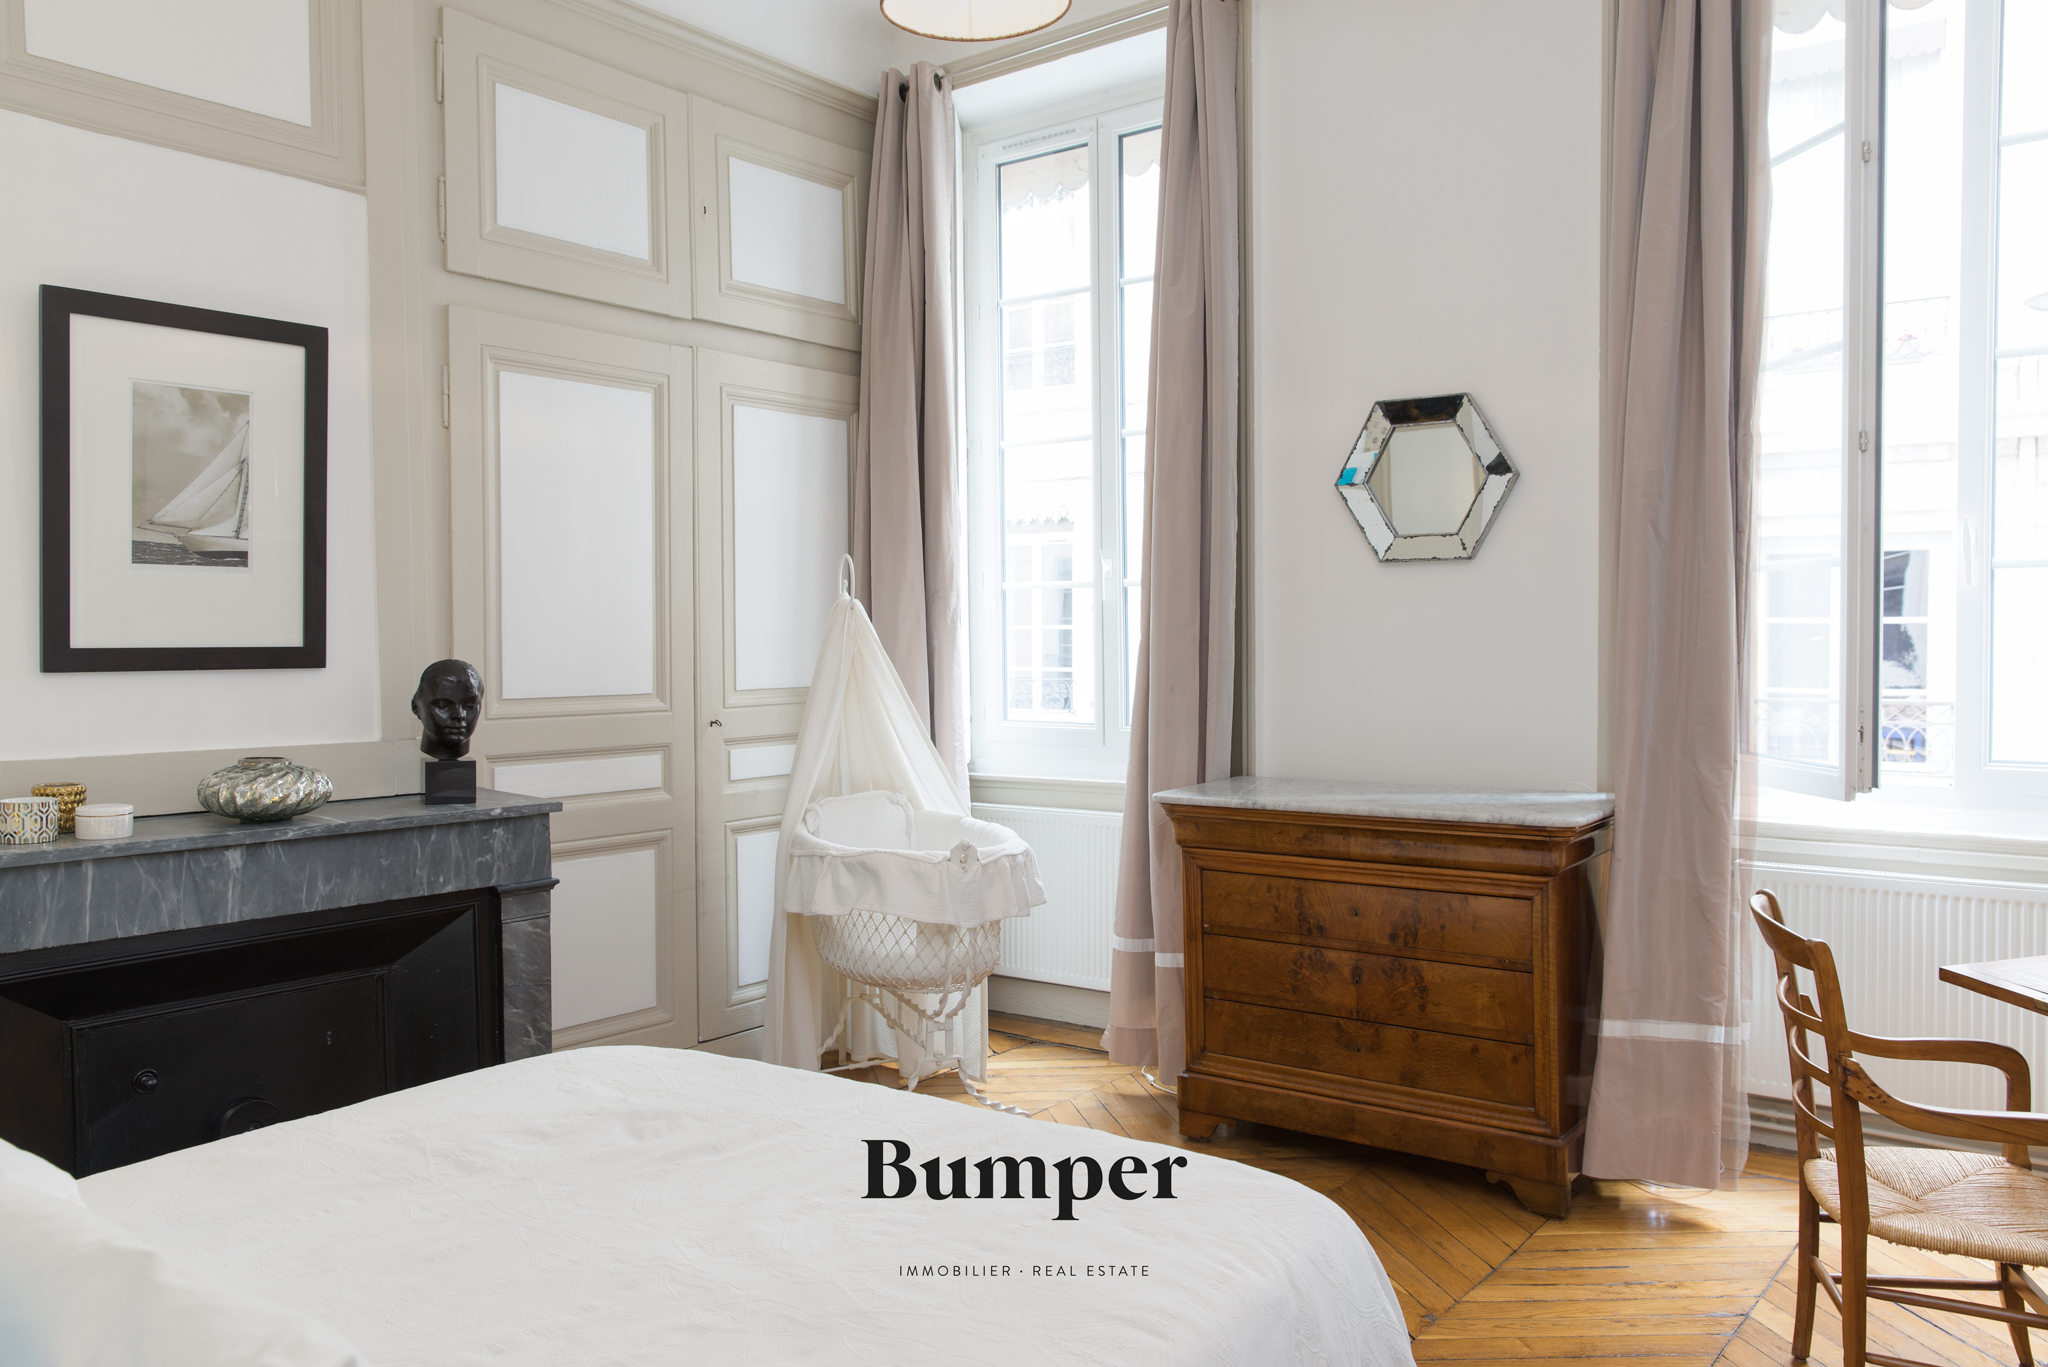 giverny-appartement-lyon-69002-avendre-117m2-bumper-france-immobilier-chambre1.jpg